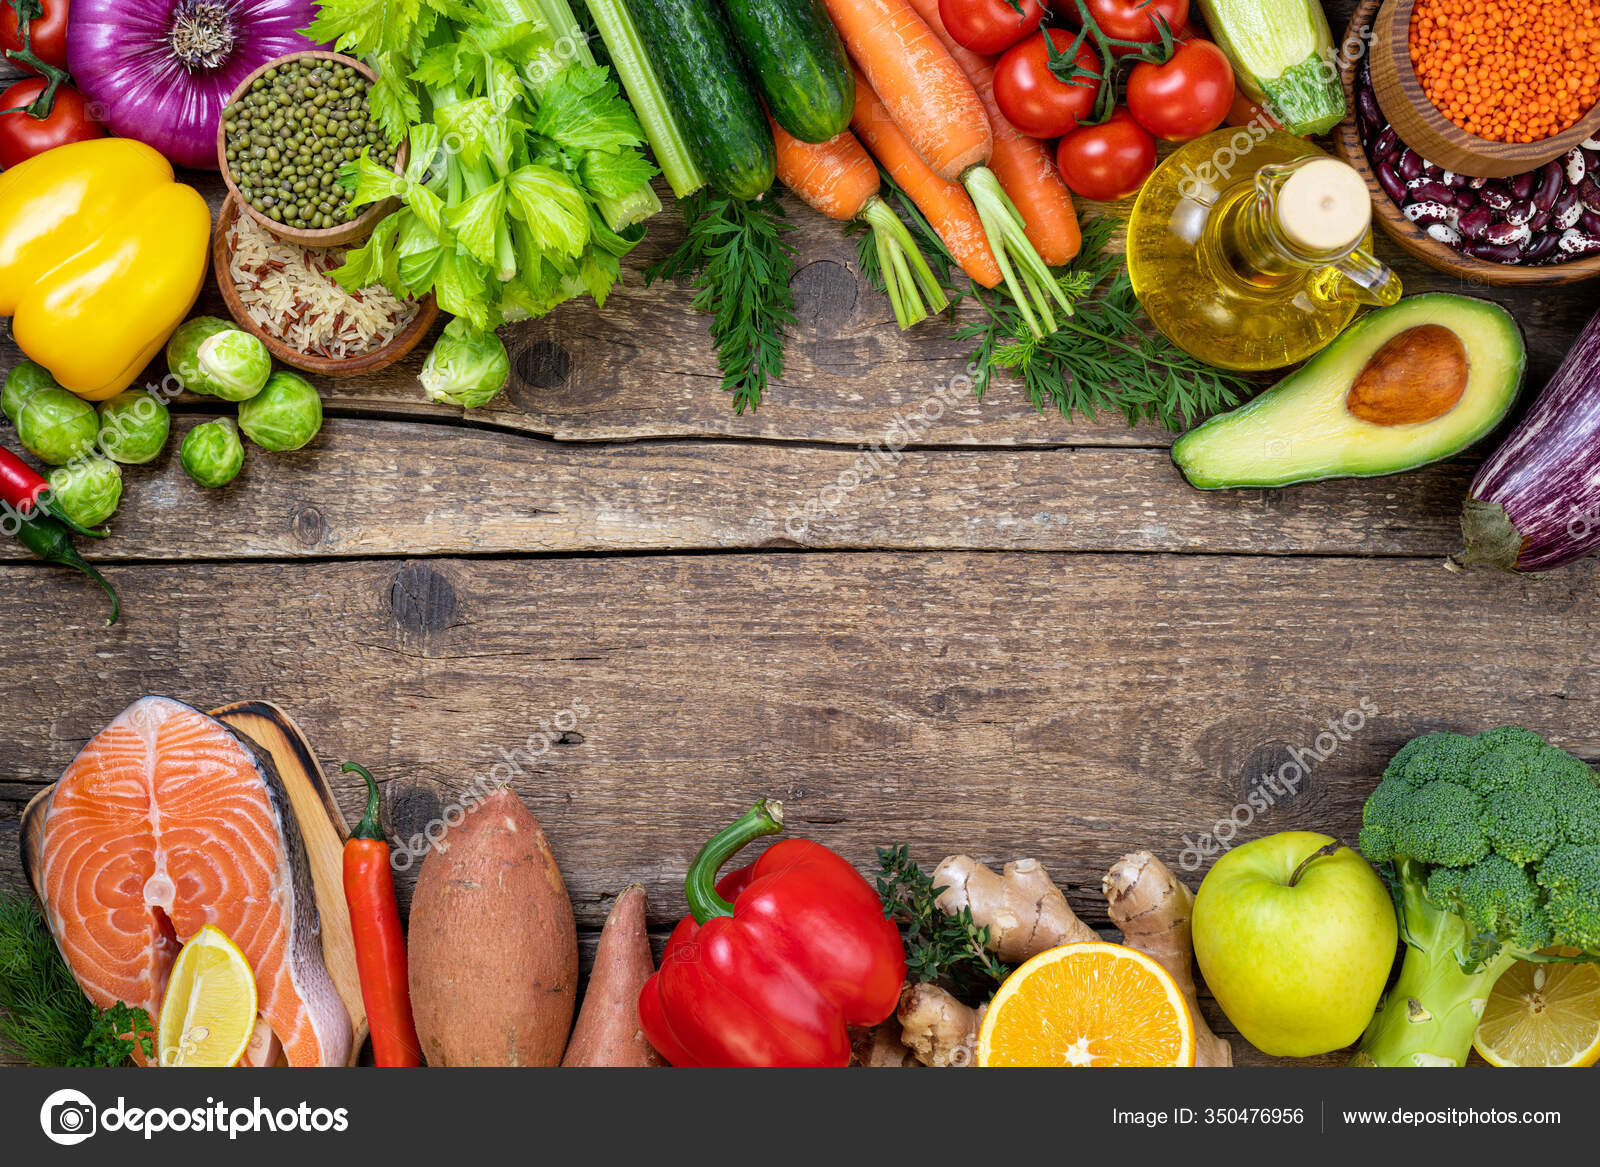 National Nutrition Month - Healthy Eating Made Simple! - Recover Health